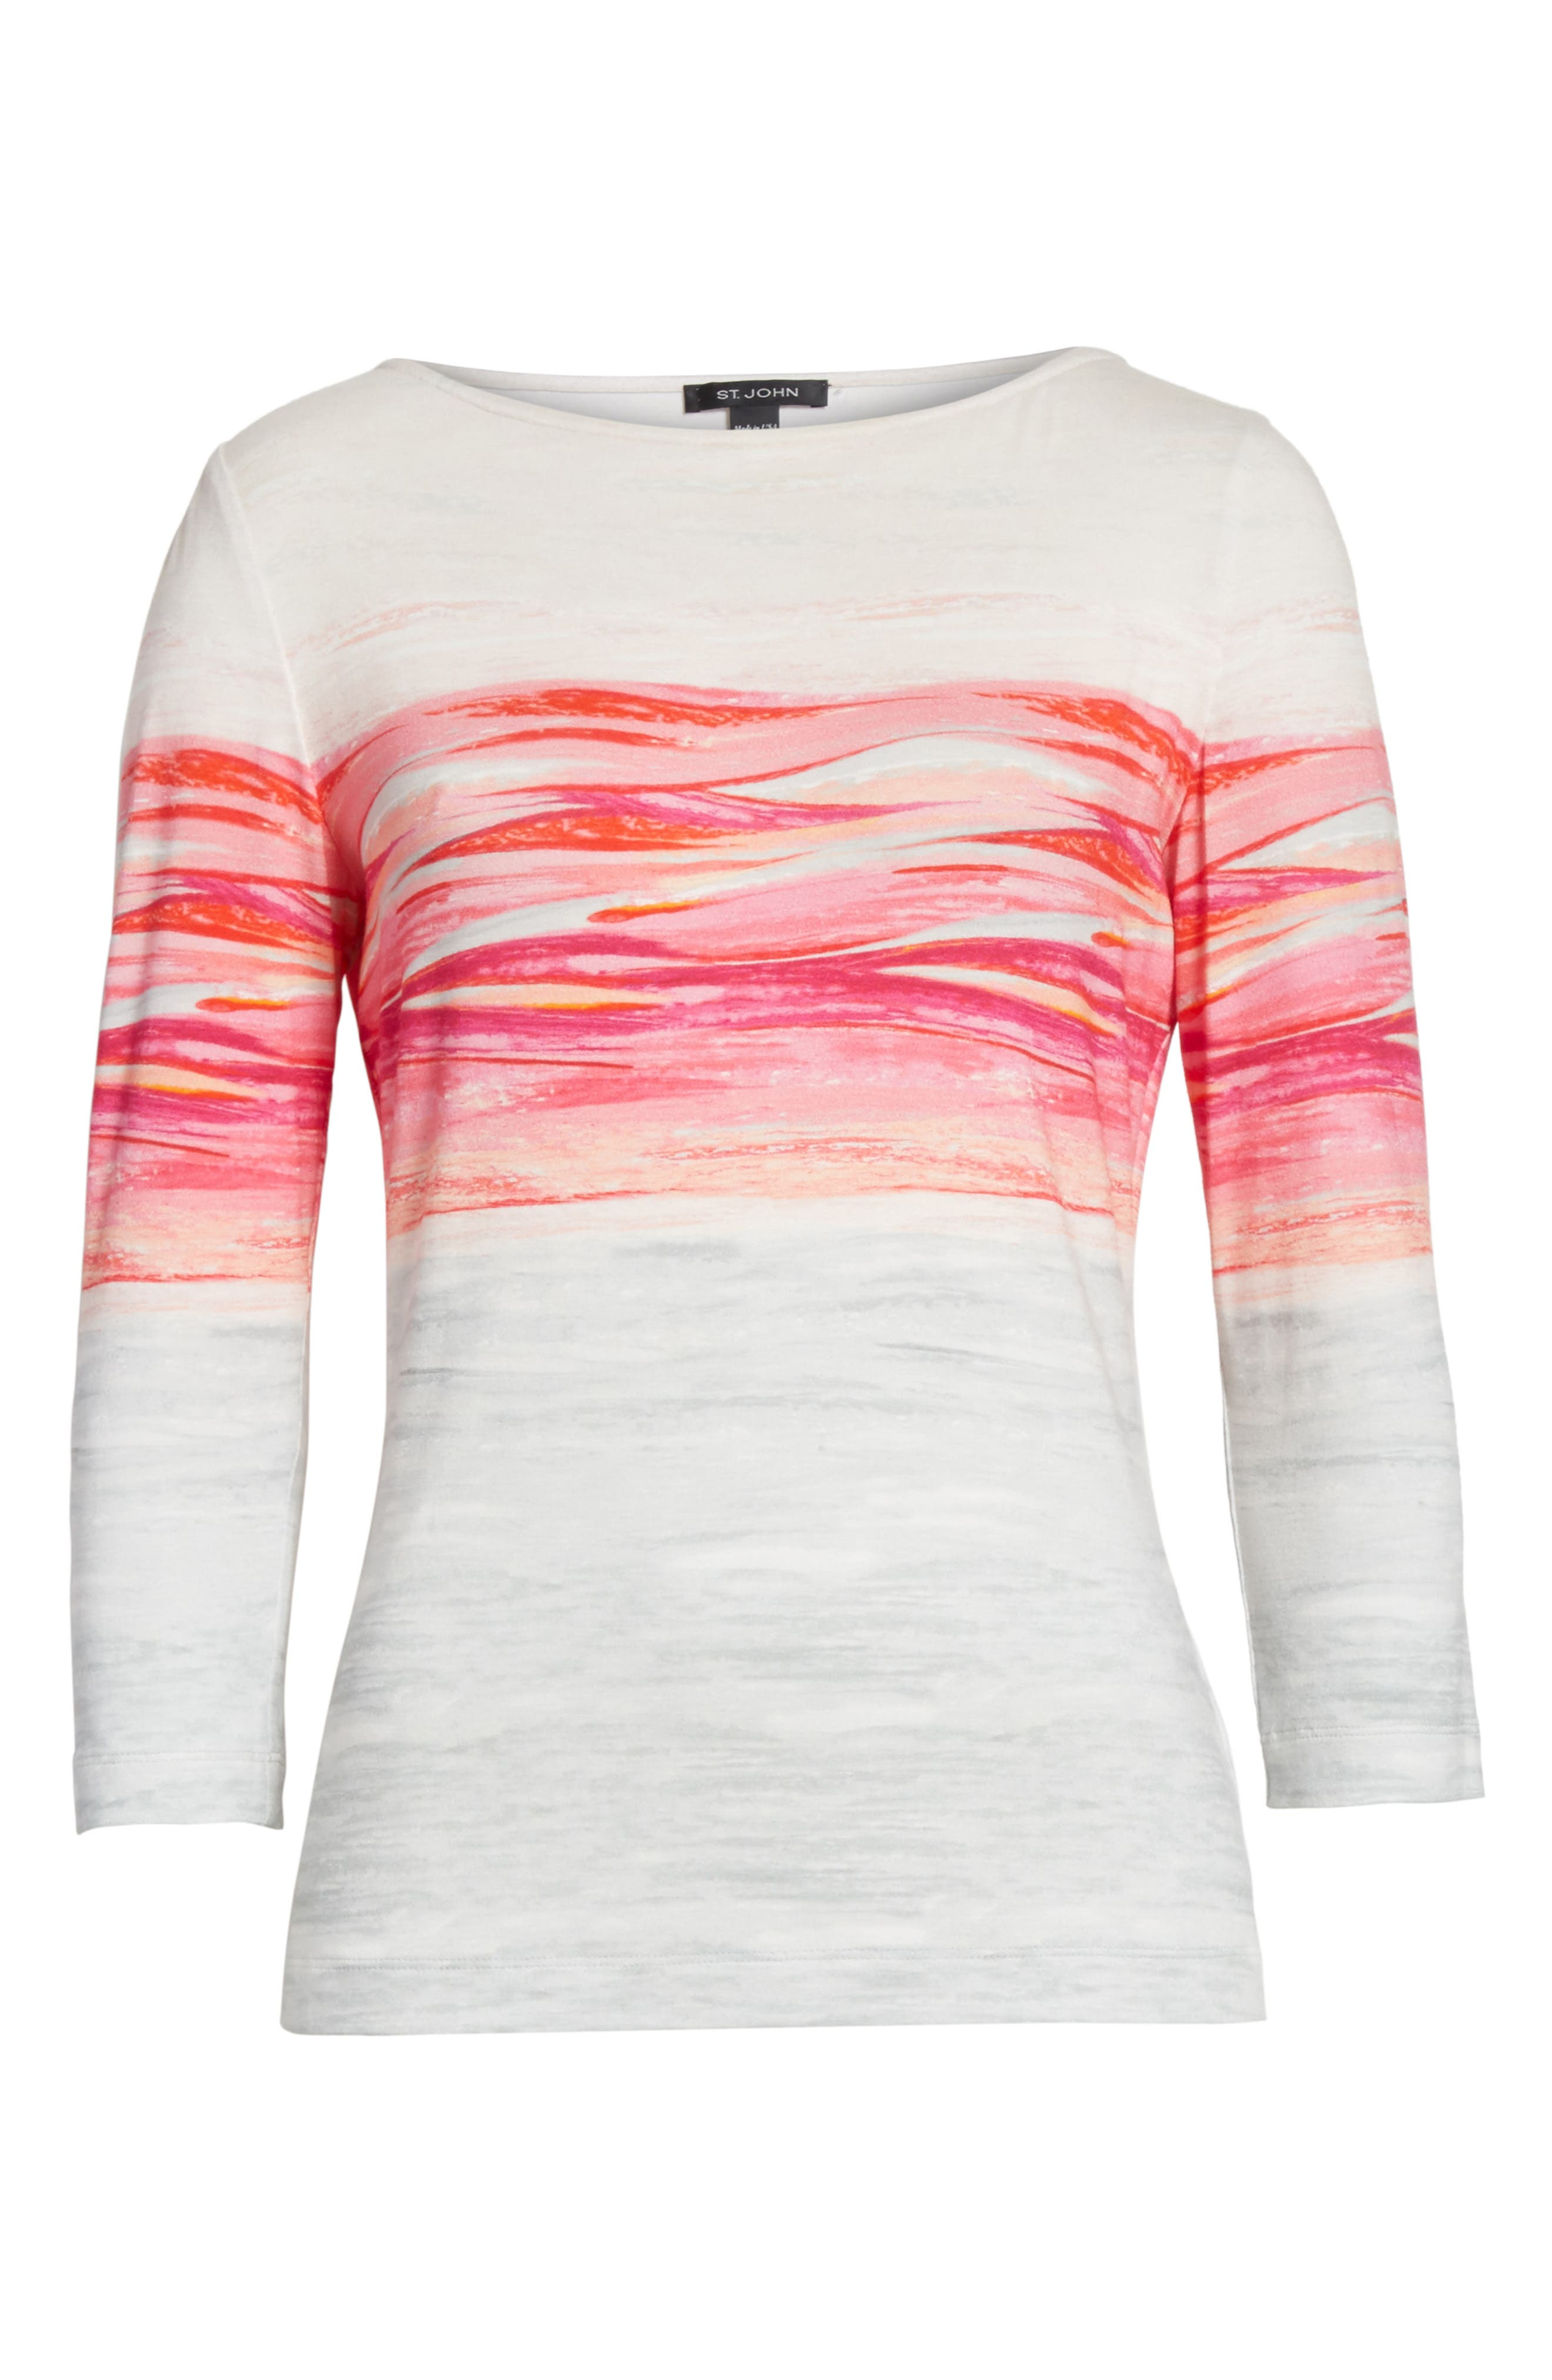 Textured Brushstroke Print Jersey Top,                             Alternate thumbnail 7, color,                             Bright Coral Multi